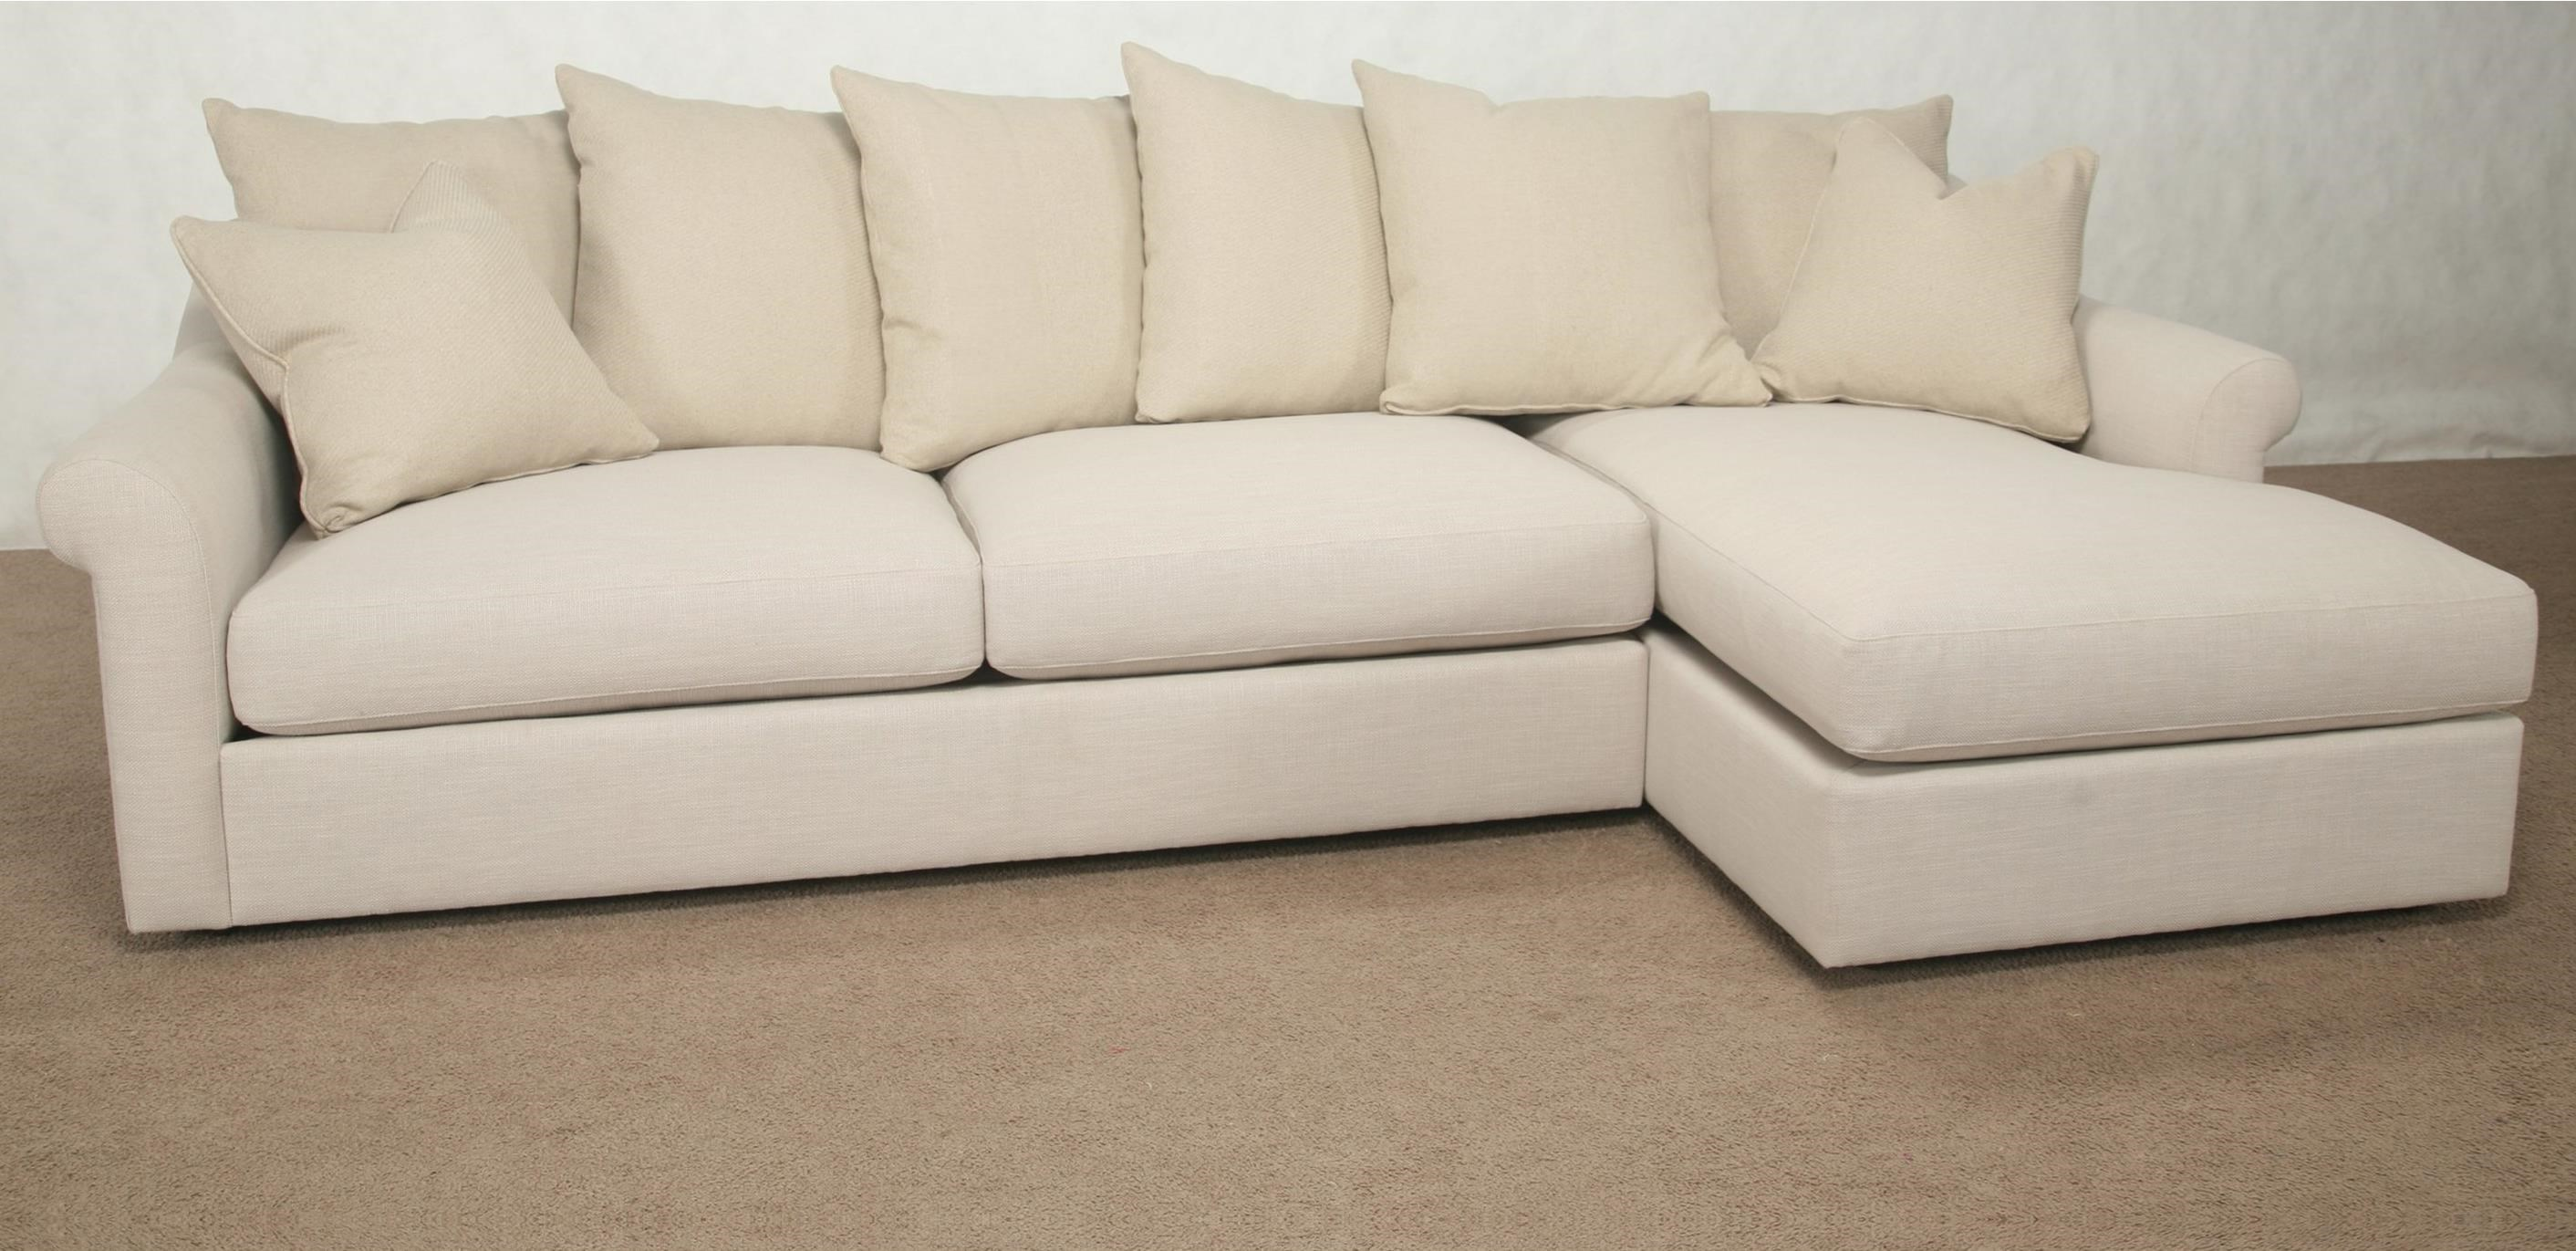 Bauhaus H16 Sectional with Chaise  sc 1 st  Pilgrim Furniture City : bauhaus sectional sofa - Sectionals, Sofas & Couches